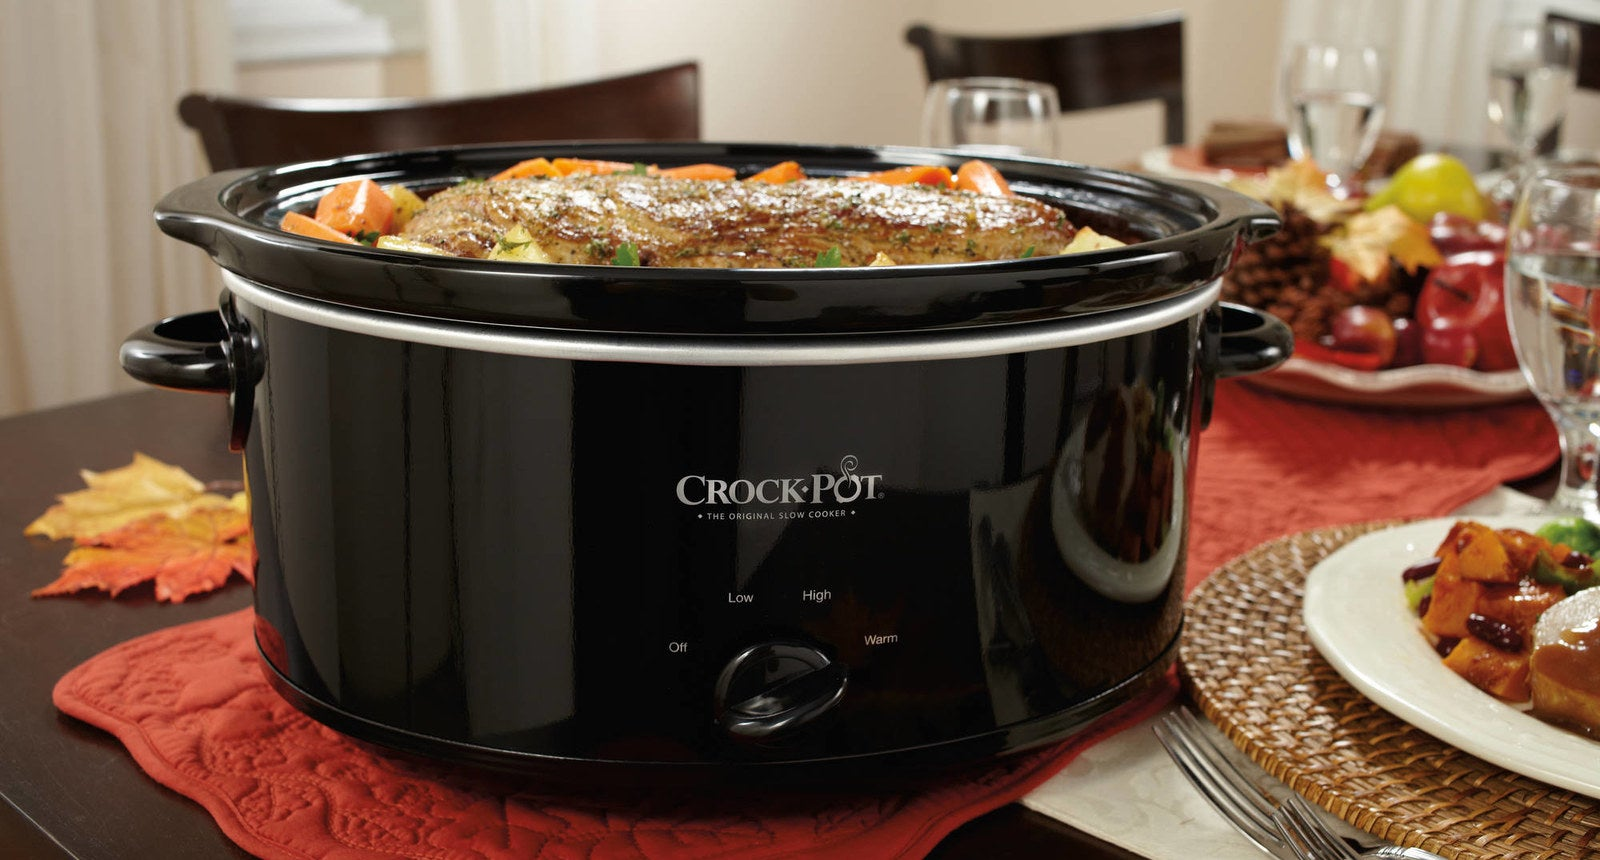 """This makes enough to serve approximately nine people. It has a low, medium, high, and warm setting, and comes with recipes for inspo. The stoneware and glass lid are removable and dishwasher-safe.Promising review: """"We just bought this Crock-Pot last week and so far we are loving it. It has a warm setting which lets us make a meal at night, let it cook overnight, and keep it warm for dinner time. Cleanup was extremely easy, and the instructions come with some recipes, which are great! The first meal we made was pot roast."""" —LovegoogleproductsGet it from Walmart or Jet for $19.77."""